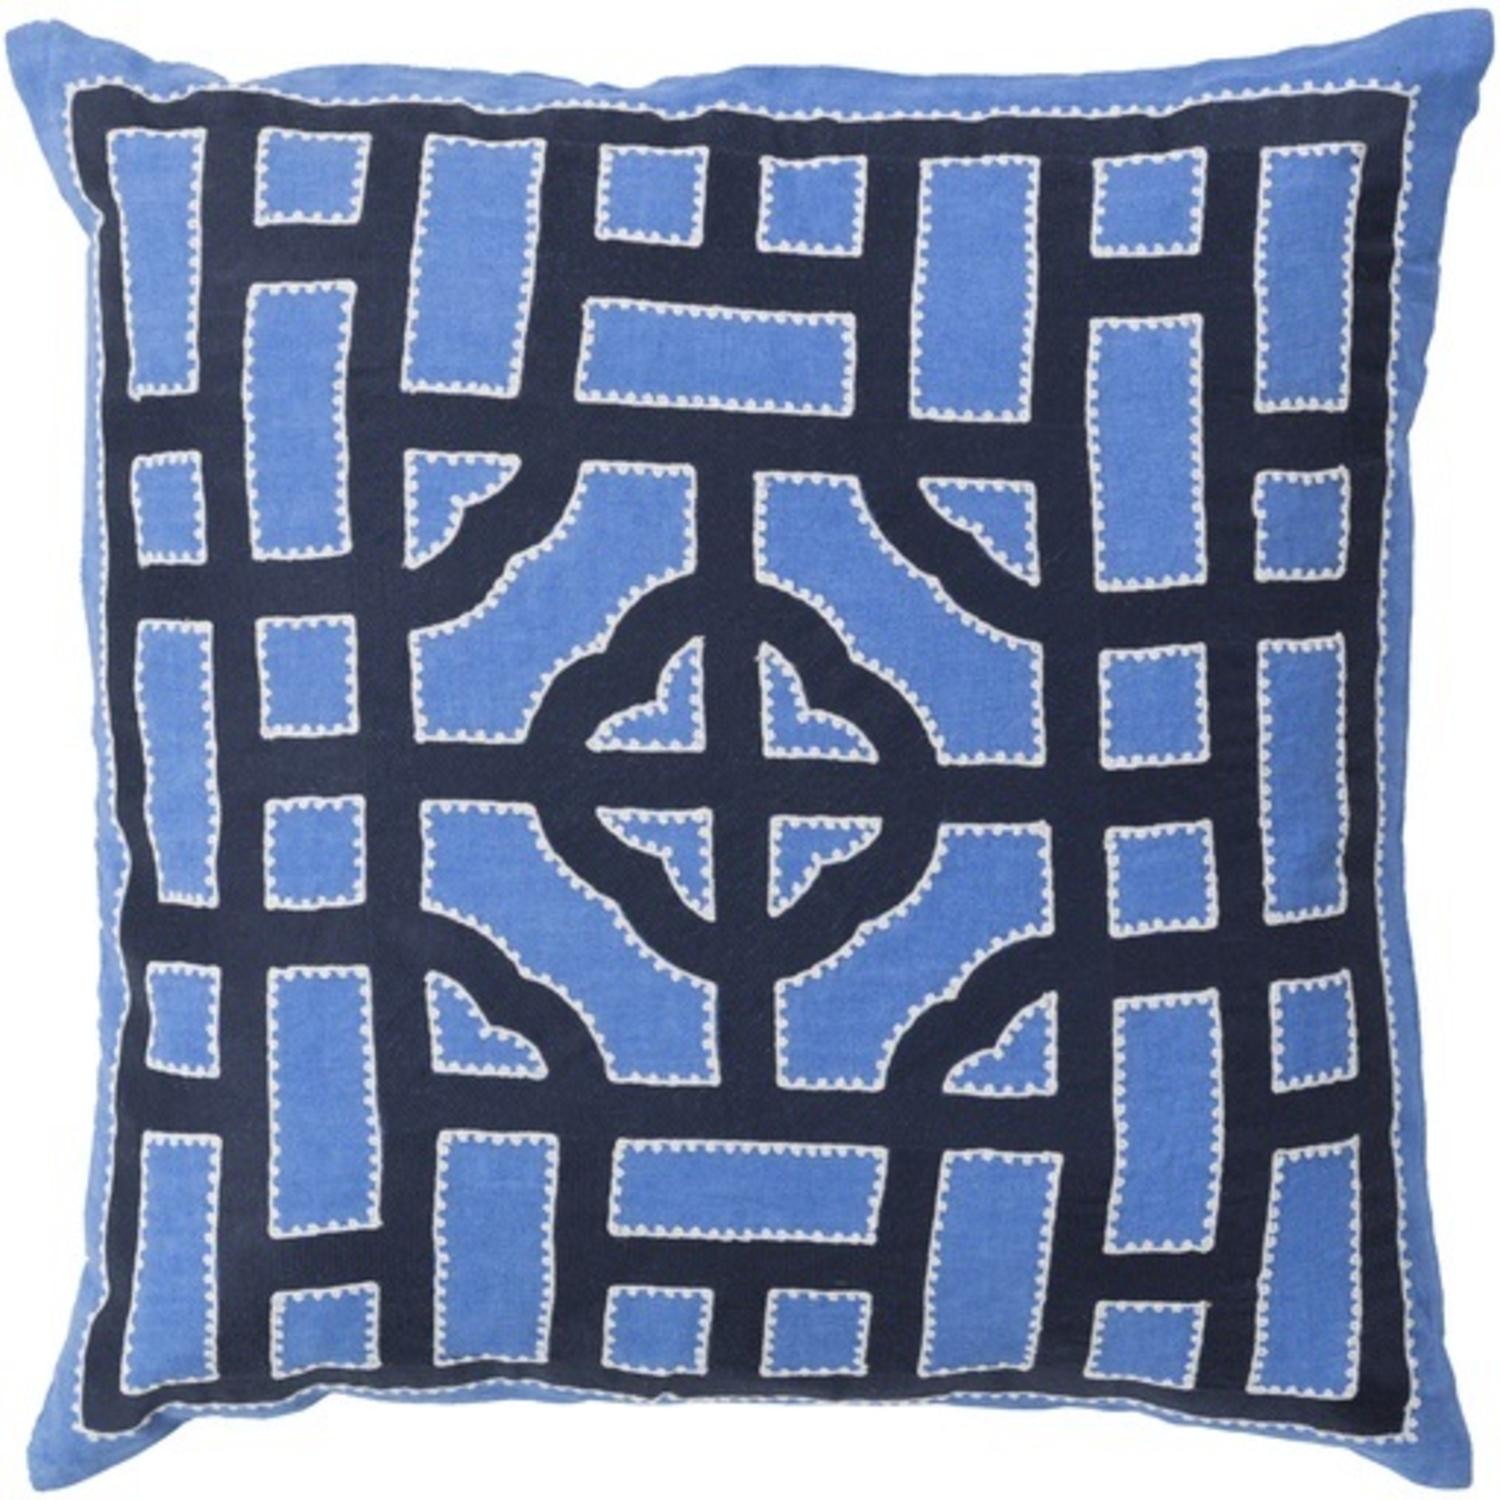 Royal Blue And White Throw Pillows : 18